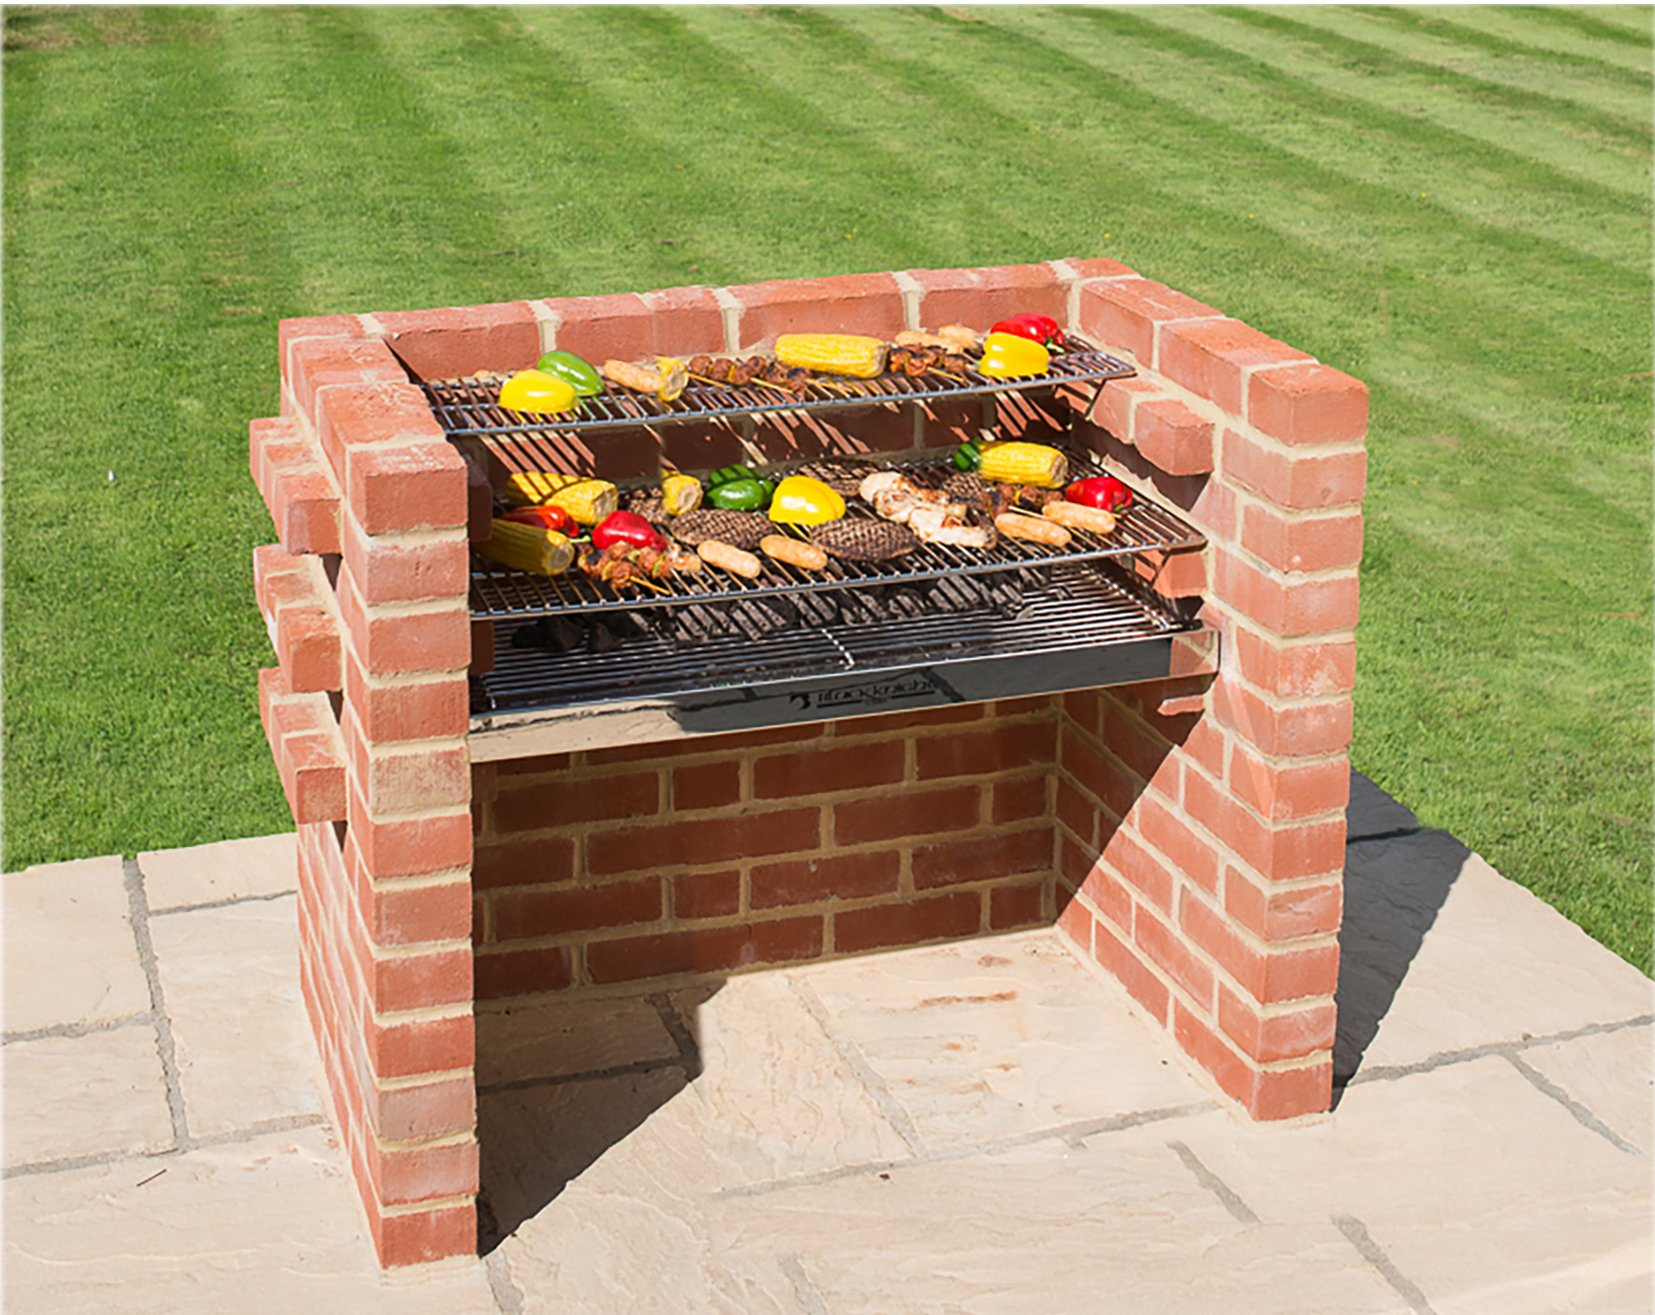 Built In BBQ Grill 550 sq in 100% Stainless Steel BKB 301 Brick BBQ Kit with Warming Rack